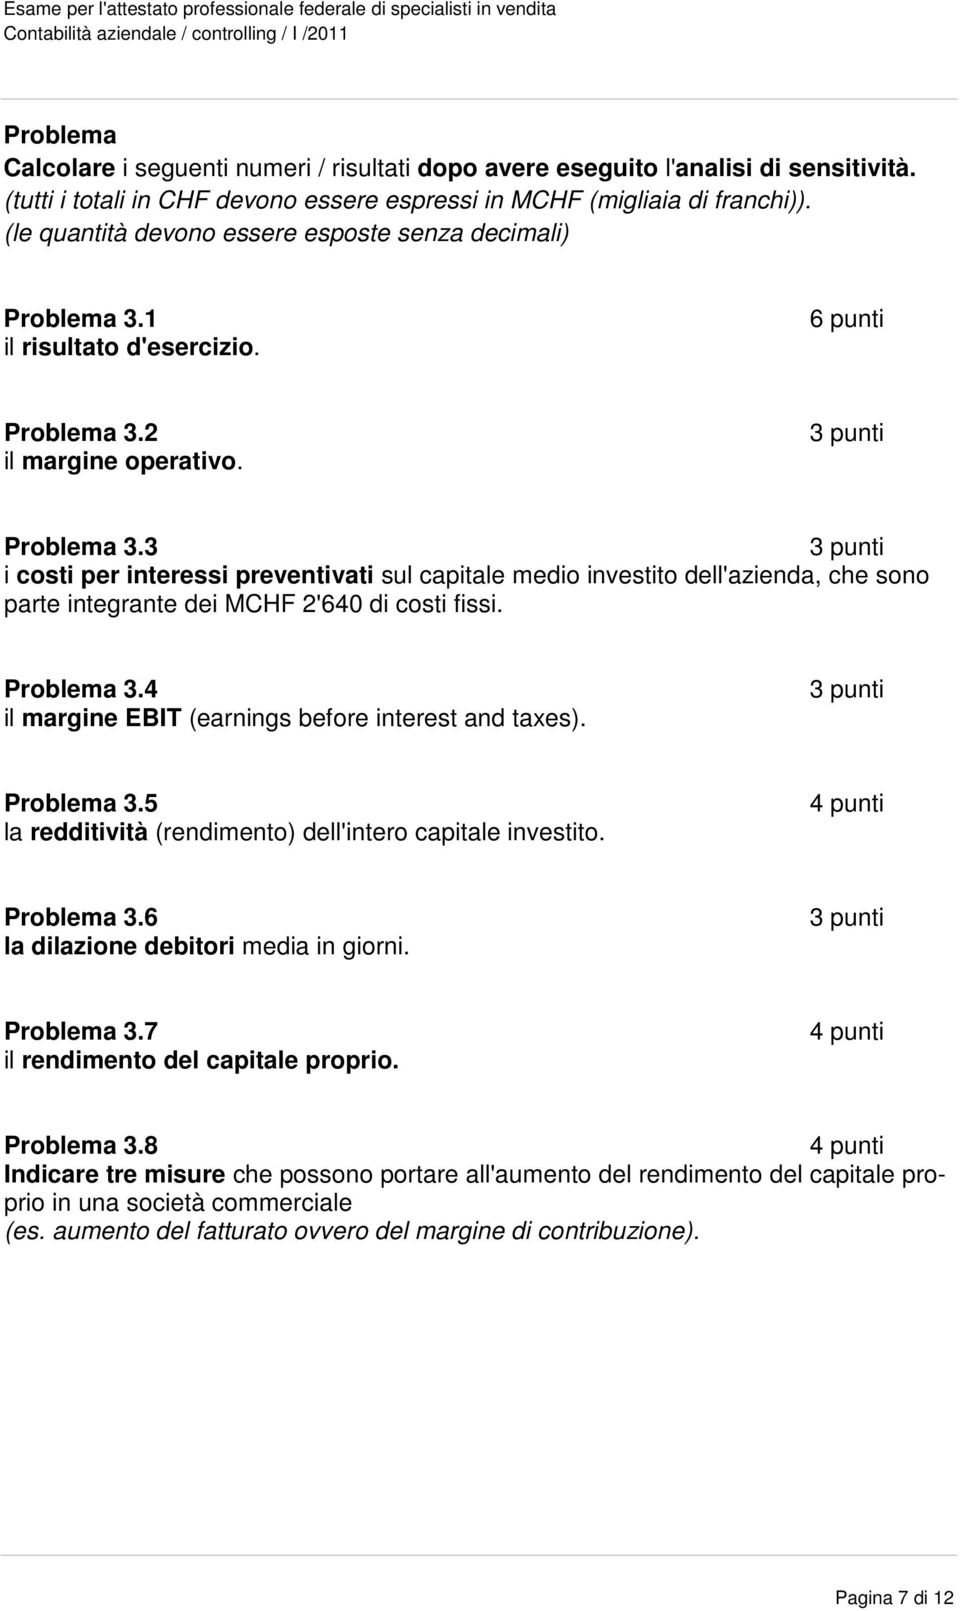 Problema 3.4 il margine EBIT (earnings before interest and taxes). Problema 3.5 la redditività (rendimento) dell'intero capitale investito. 4 punti Problema 3.6 la dilazione debitori media in giorni.